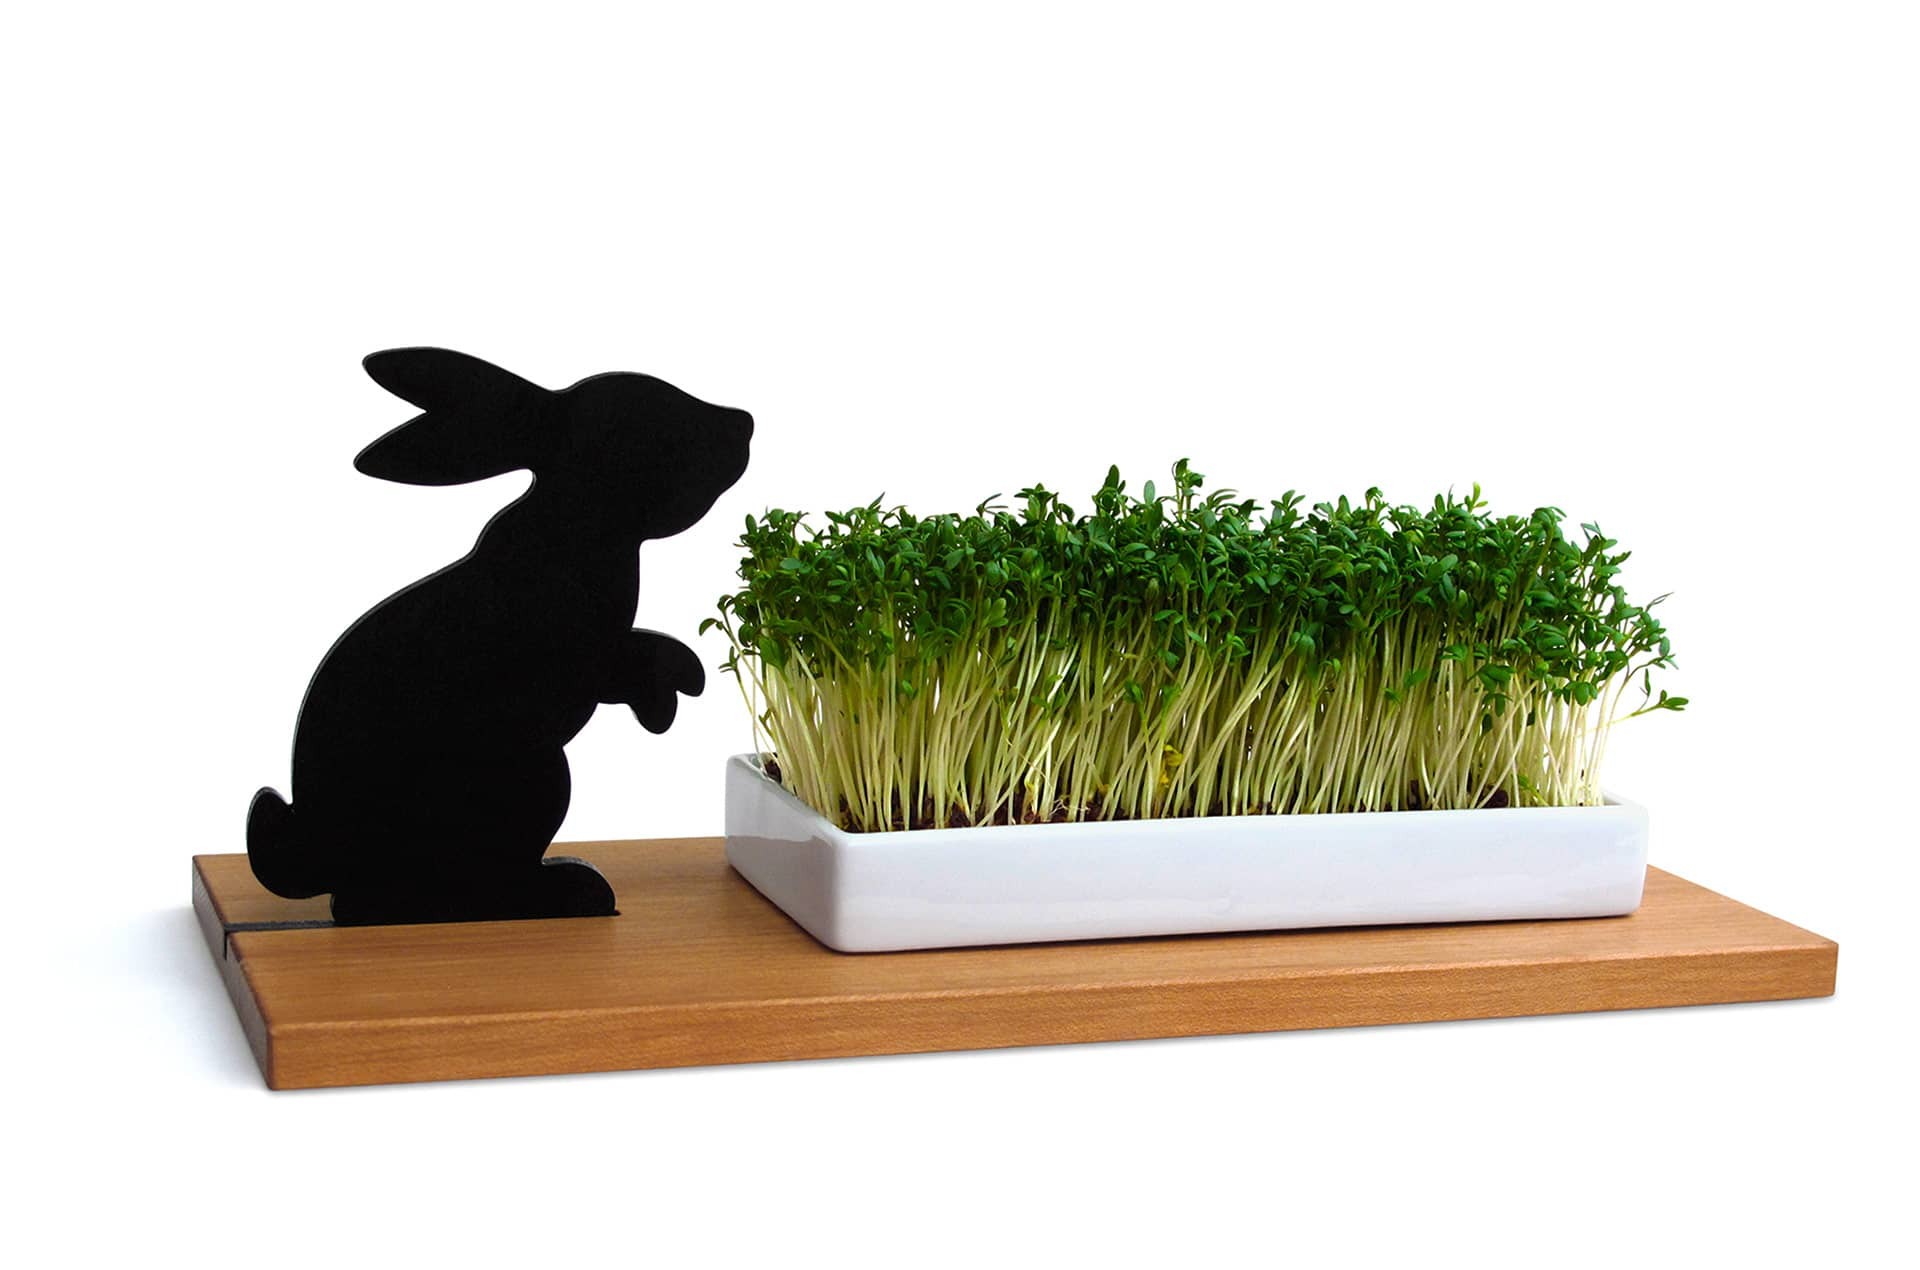 Planchette lapin, SMART 'N' GREEN-1-PARIDEO design durable